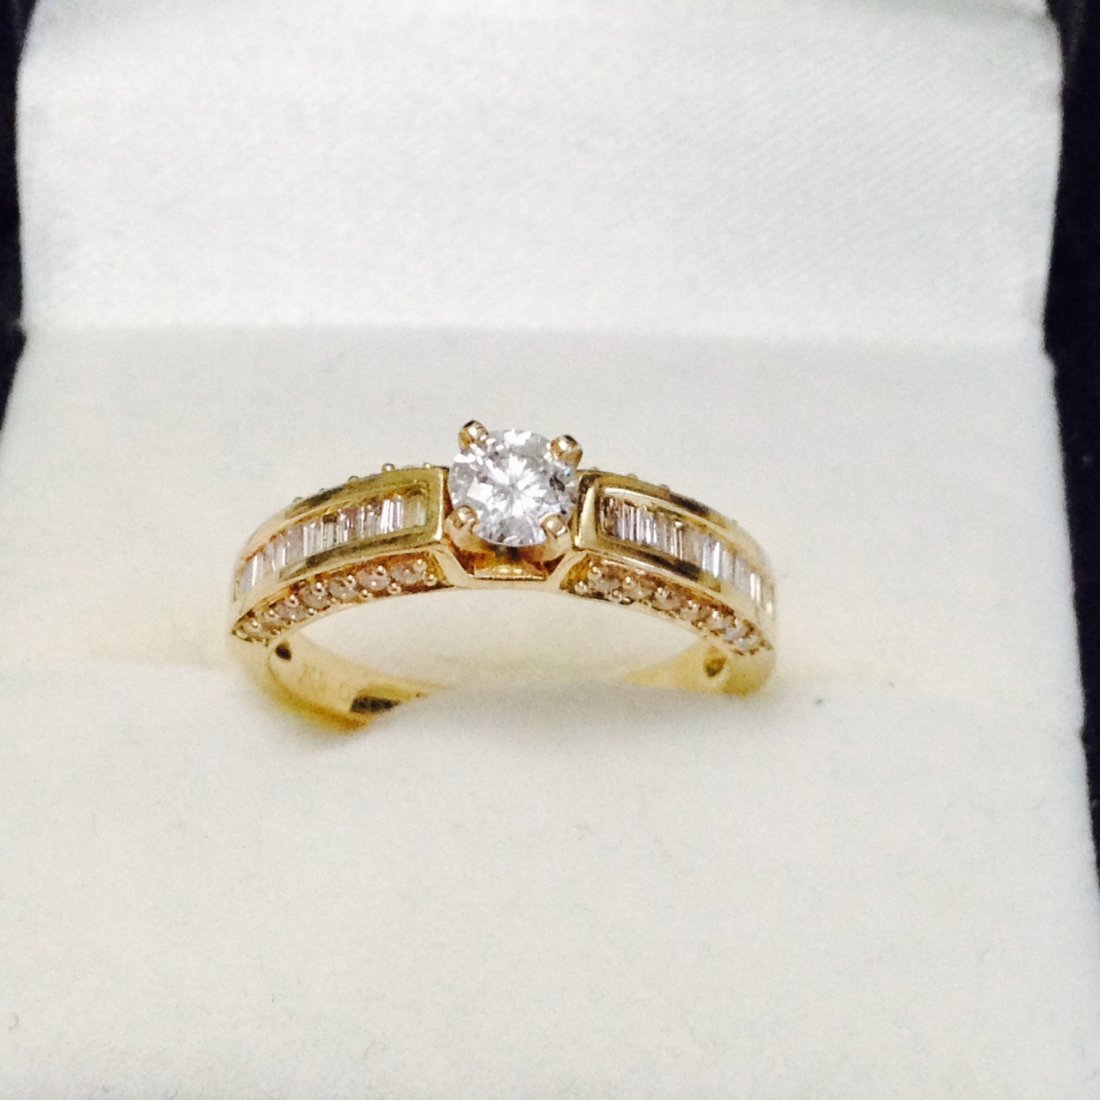 14k Yellow Gold Diamond Engagement Ring